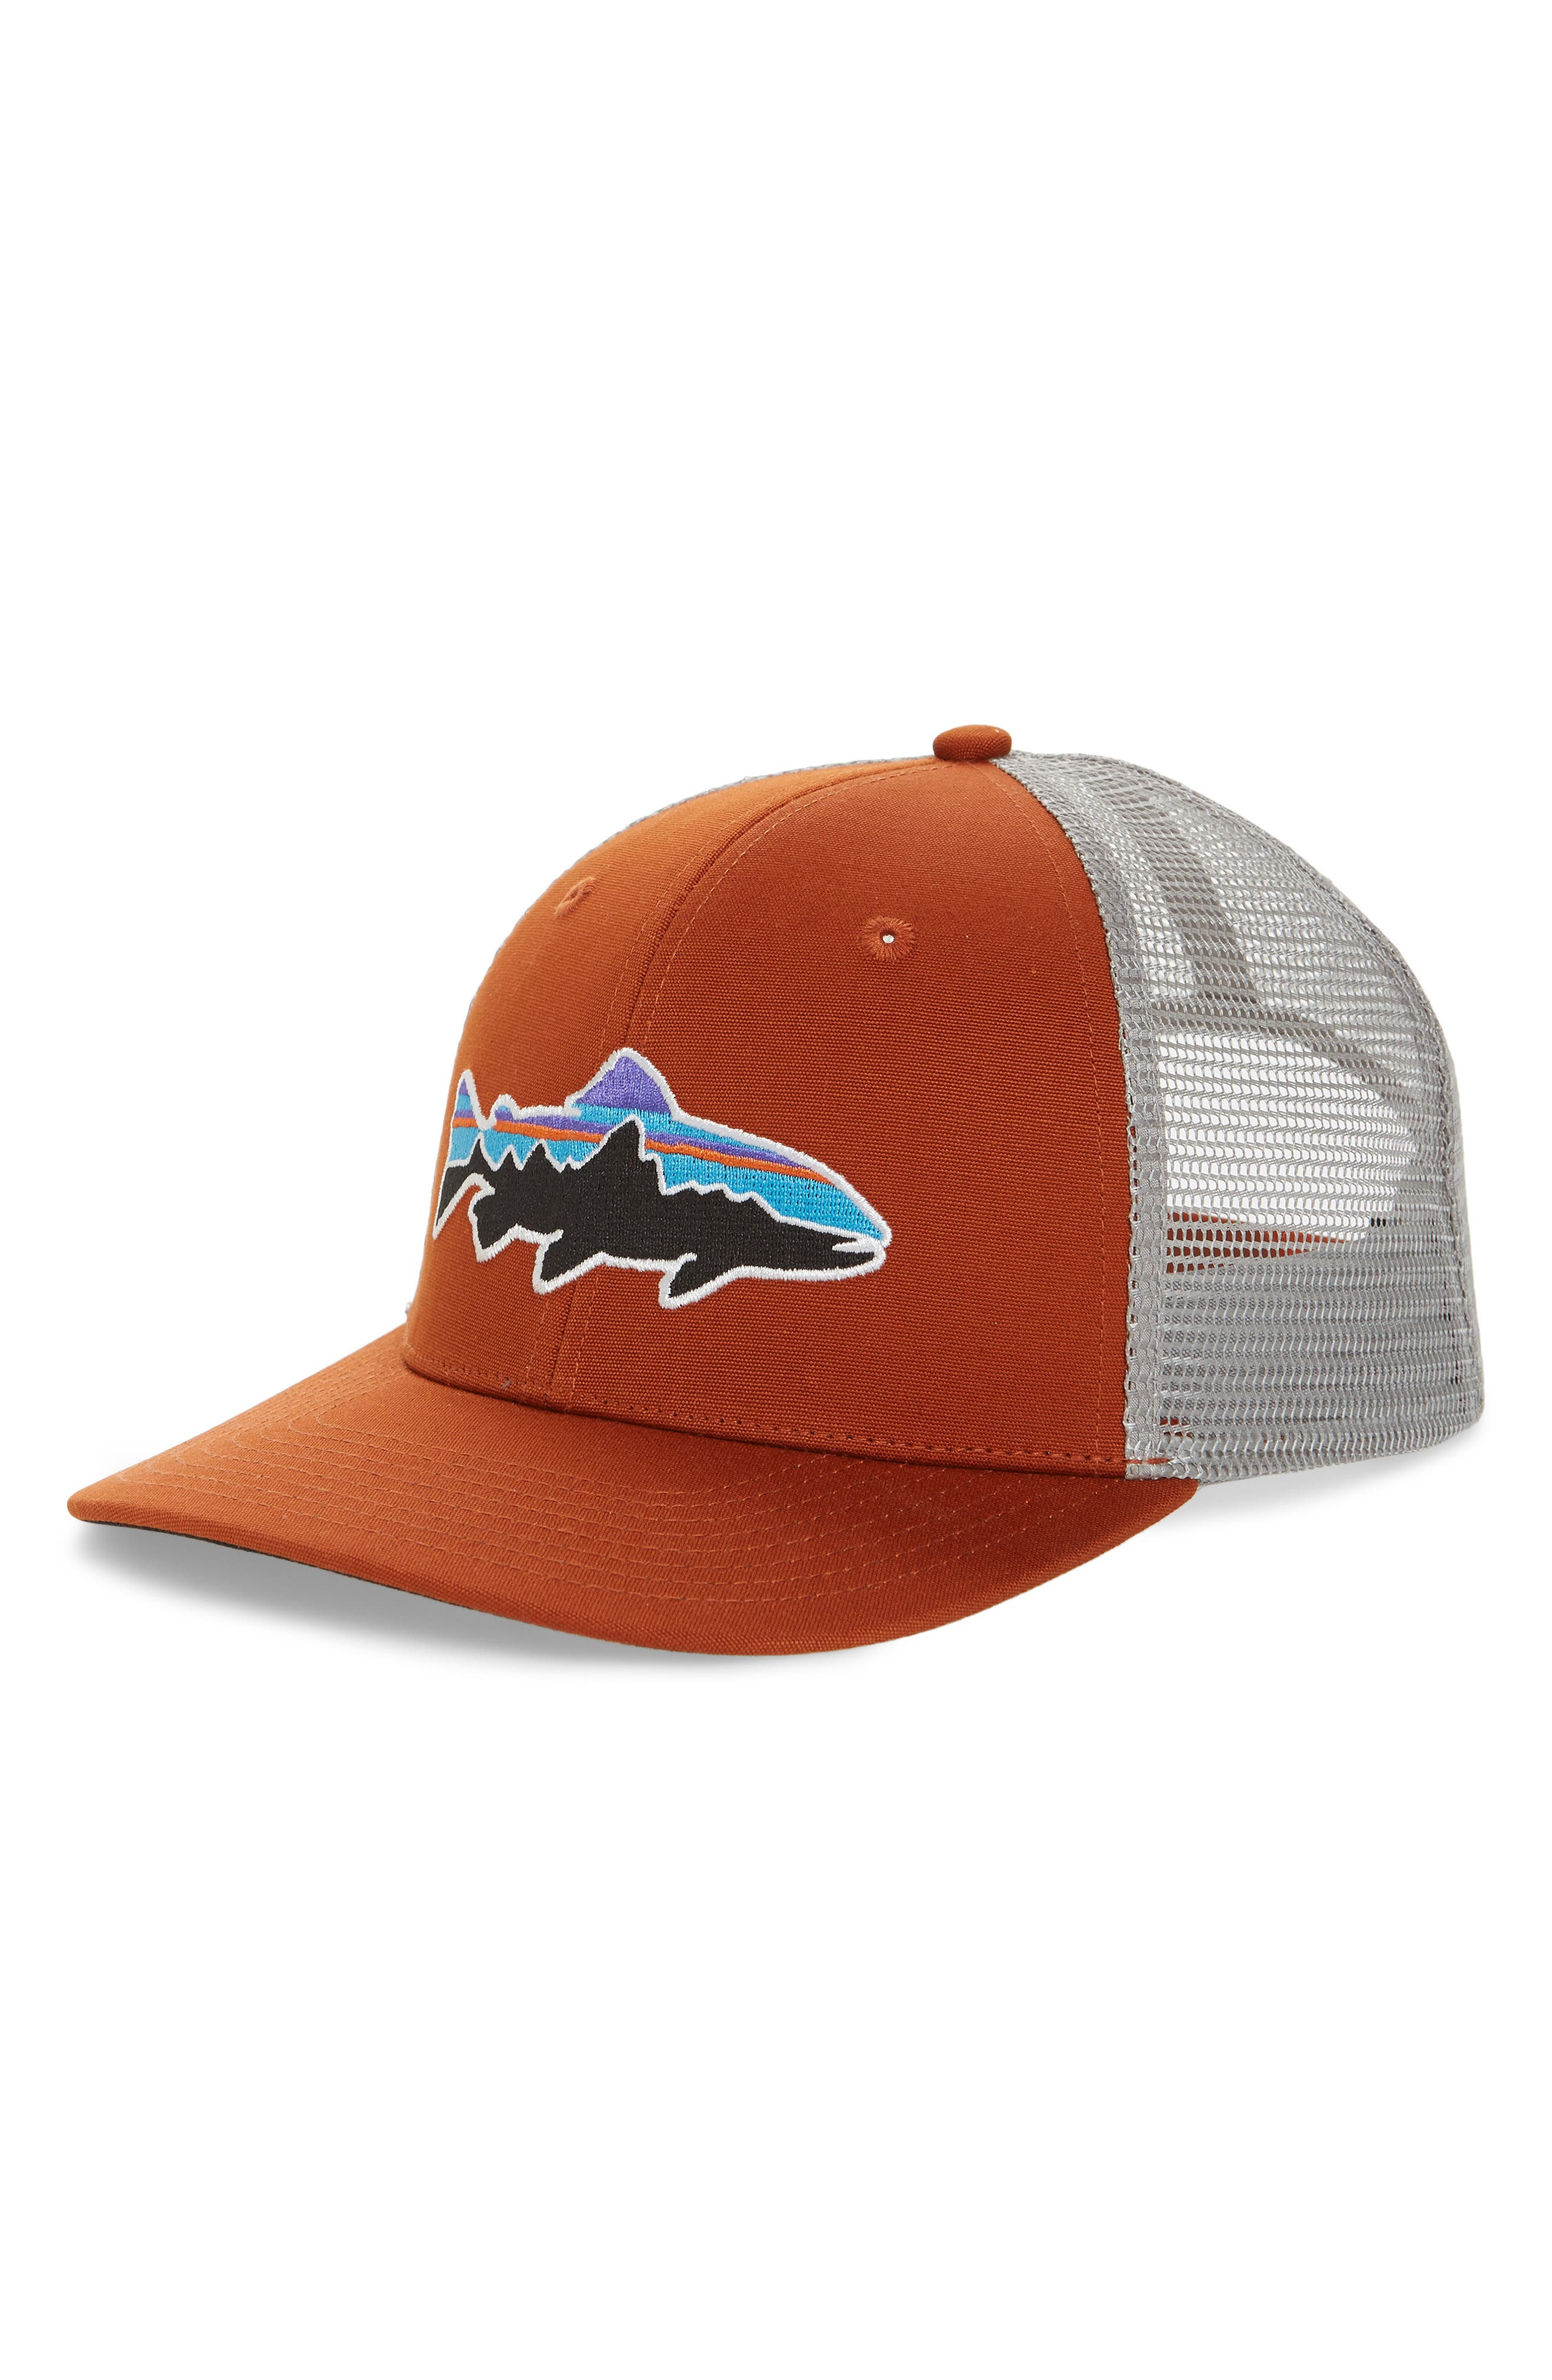 Patagonia 'Fitz Roy - Trout' Trucker Hat